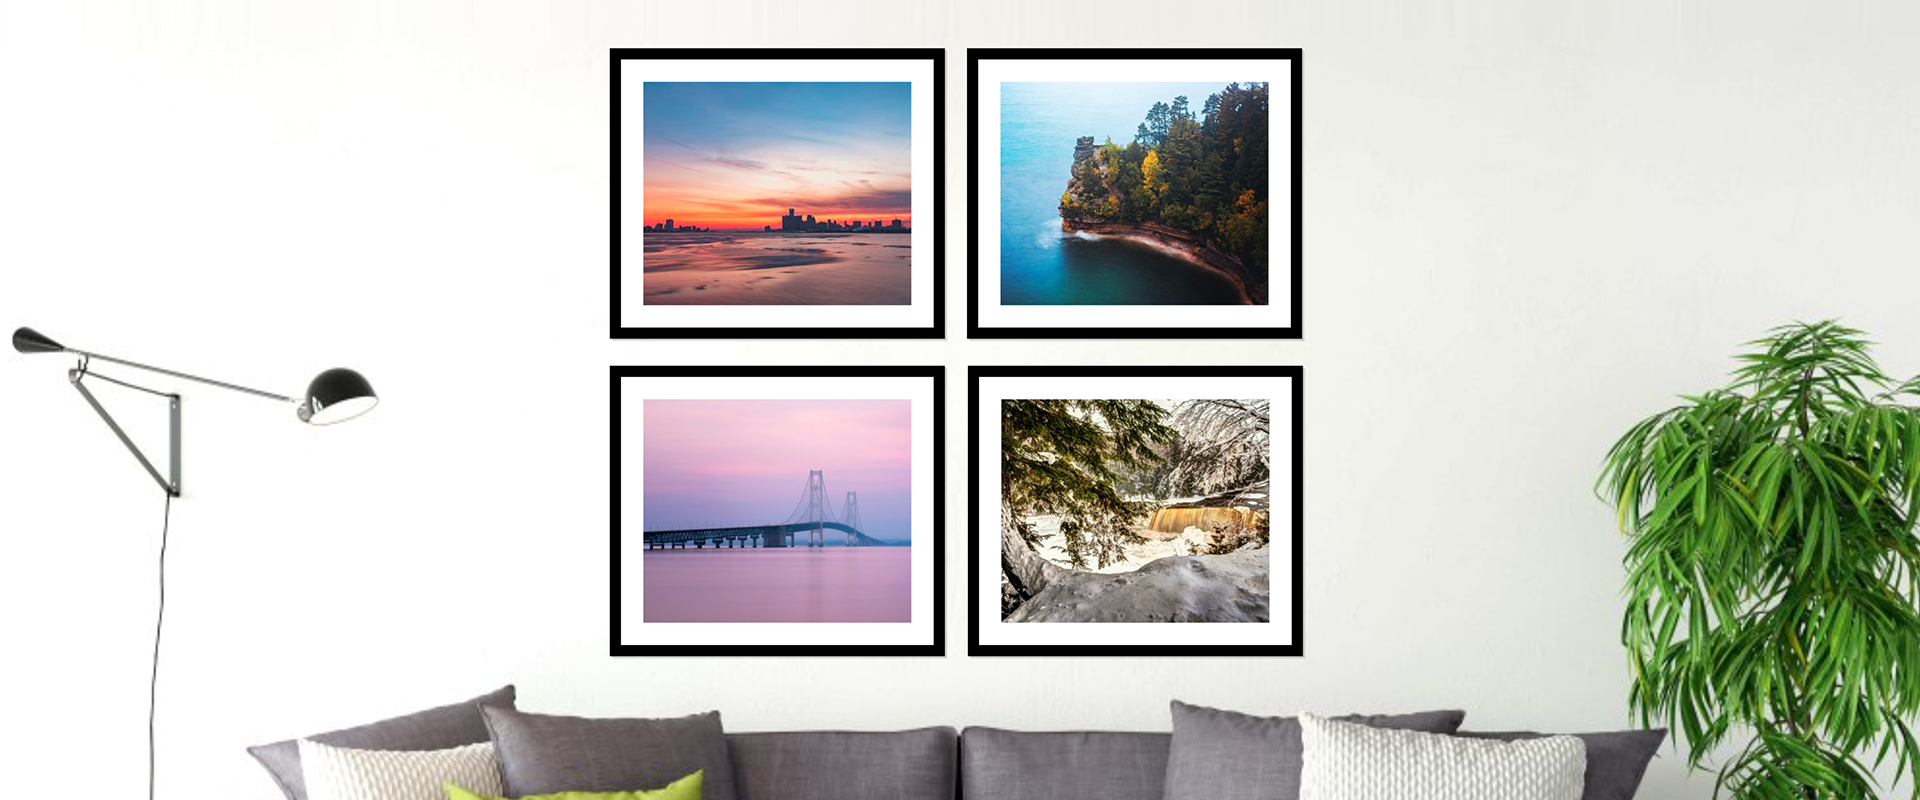 Michigan Prints, Michigan Canvases, and Michigan Metal Prints to decorate your home or office!